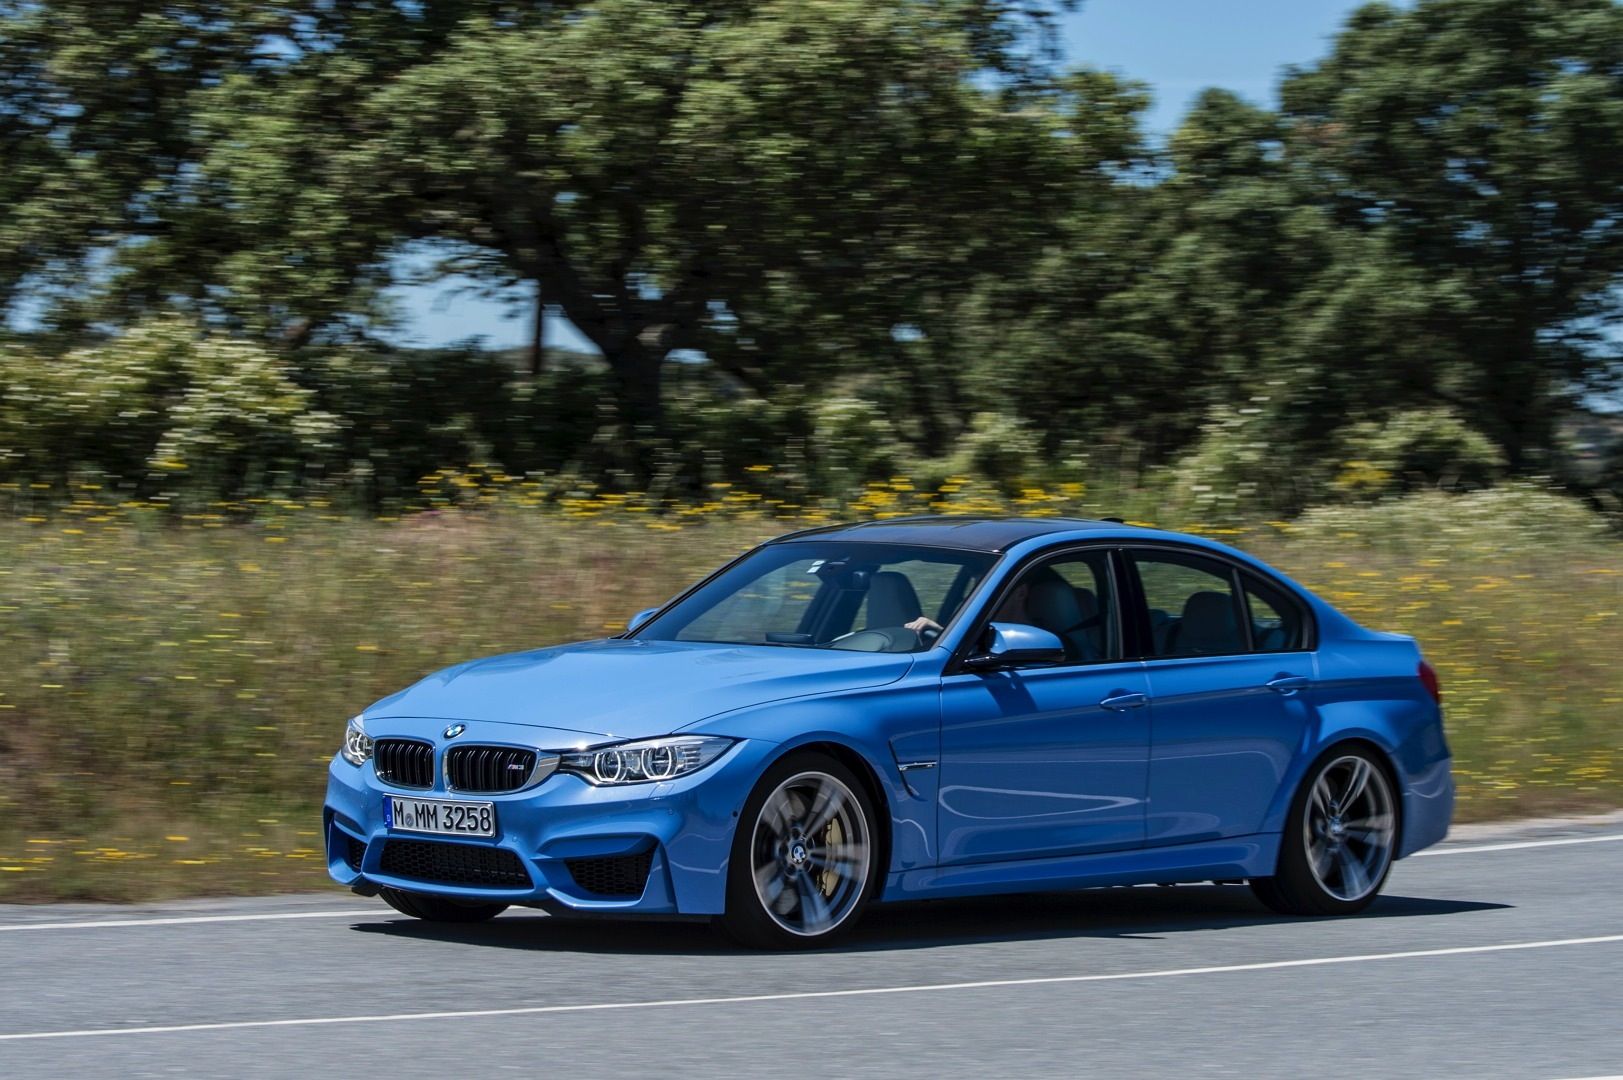 New Bmw M3 And M4 Hd Wallpapers Are Here 81074